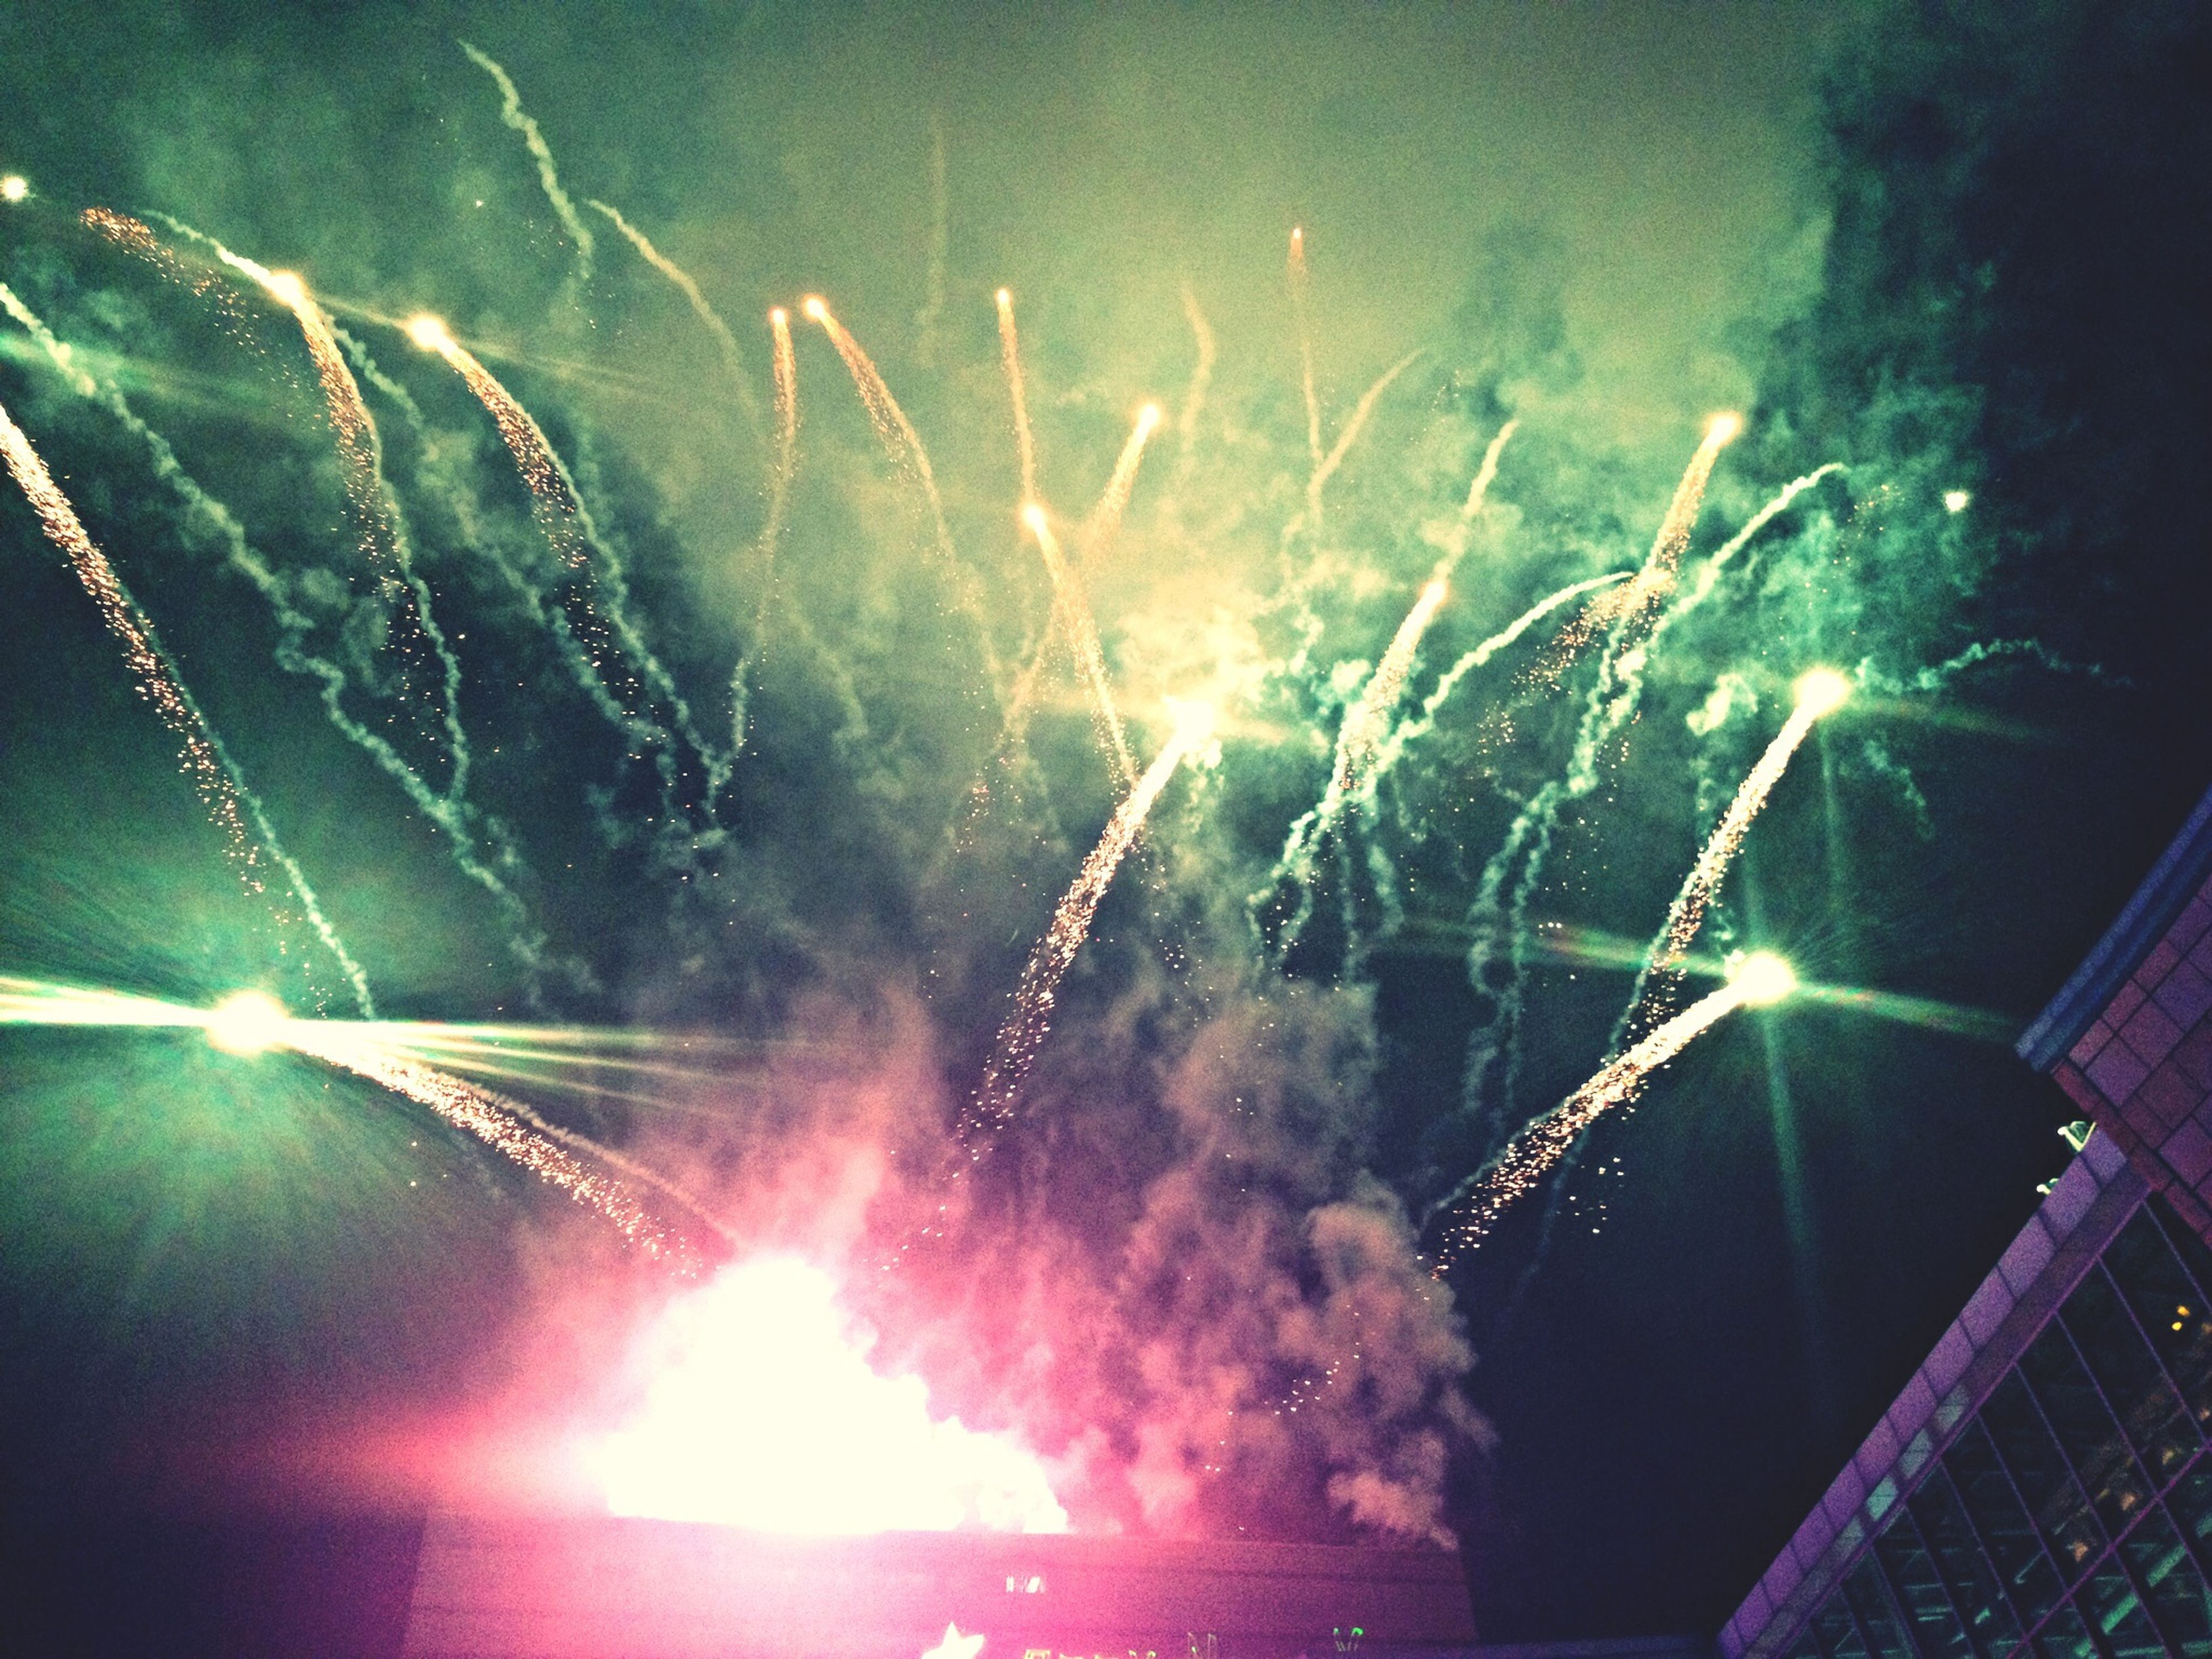 night, illuminated, glowing, long exposure, firework display, motion, exploding, sky, sparks, firework - man made object, low angle view, firework, arts culture and entertainment, celebration, thunderstorm, no people, outdoors, light, light - natural phenomenon, blurred motion